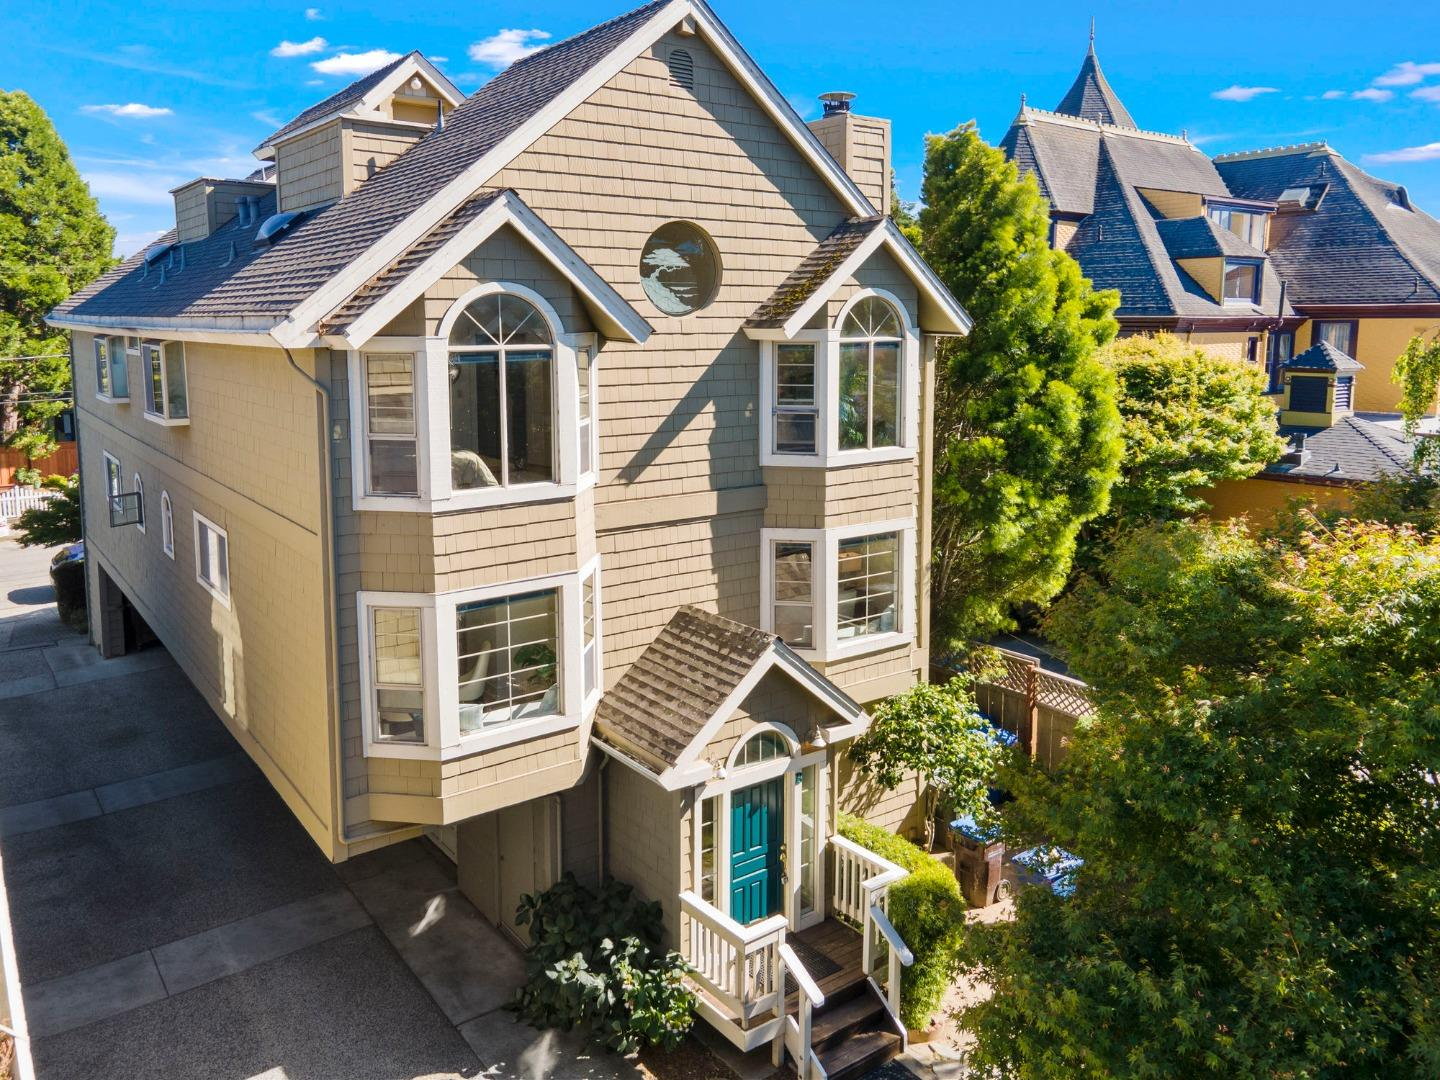 This 3-BR, 2.5-BA multilevel home is just a few blocks from the Santa Cruz Beach Boardwalk & wharf. The living spaces are on the main level, including a living room w/a cozy gas fireplace; a kitchen w/tile counters & white cabinets; a breakfast nook w/a bay window & window seat & a formal dining area with a wet bar tucked into an alcove. Carpeted stairs lead to three bedrooms: a master suite with hardwood floors, angled ceilings, a bay window and nautical porthole window to let in lots of natural light, and en suite bath with a separate tiled vanity area. The two other bedrooms are carpeted and have the same angled ceilings as the master bedroom, with custom windows and a shared bath with a walk-in shower. A rooftop deck is the perfect perch for starting or ending the day overlooking the ocean and enjoying the sunshine and sea breezes. With plenty of room for a family or guests, this home is close to many iconic Santa Cruz attractions for all ages, from rollercoasters to rolling surf.